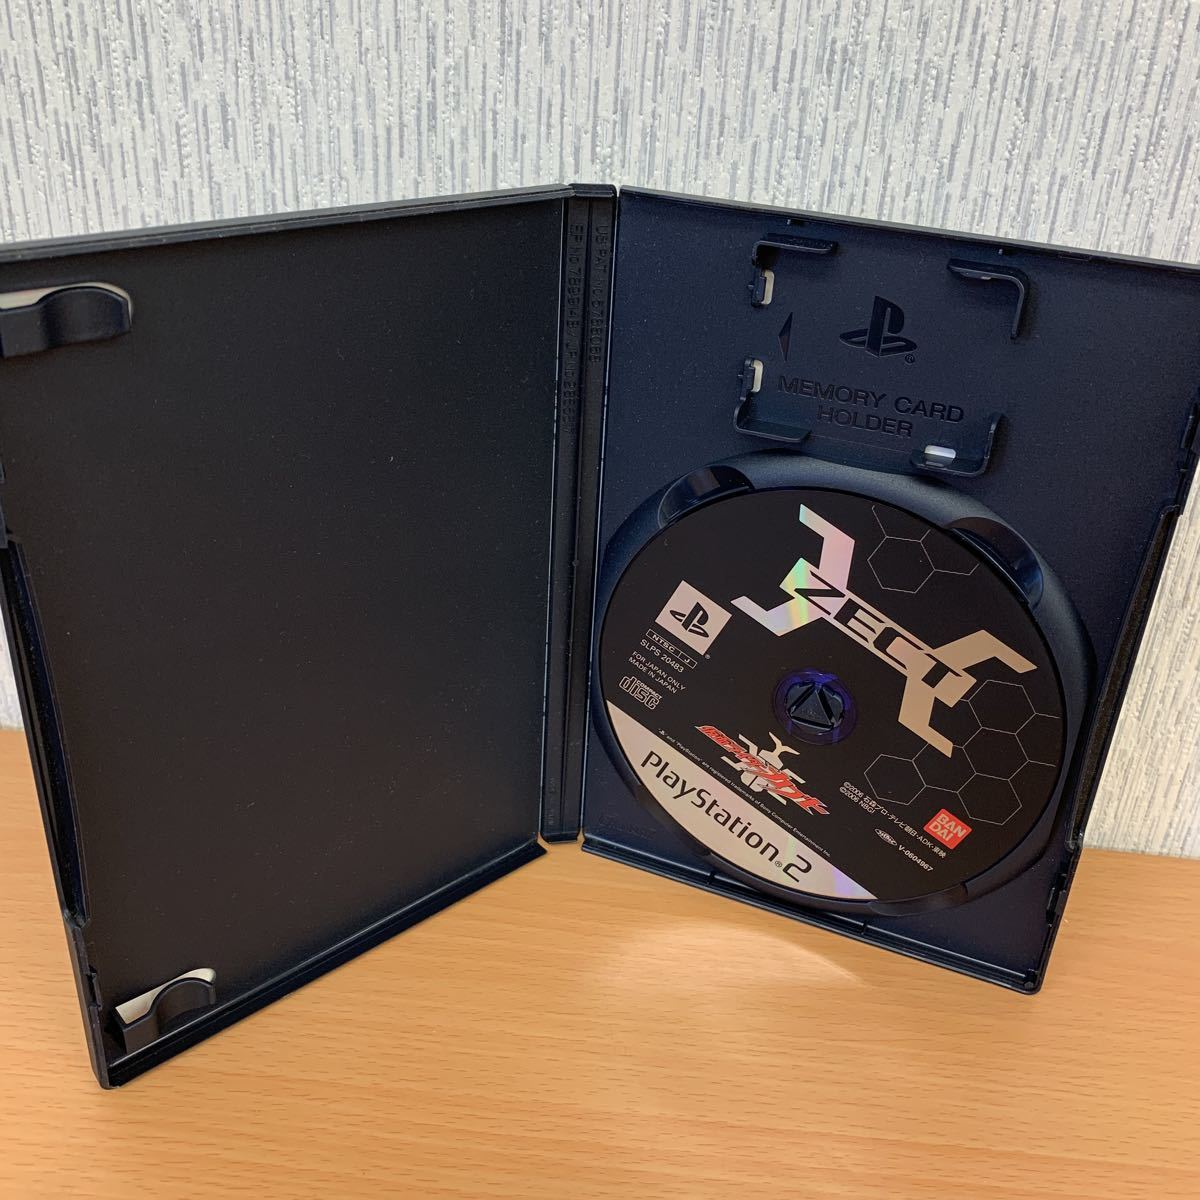 PS2 仮面ライダーカブト PS2ソフト プレイステーション2 PlayStation2 PS2ソフト 仮面ライダーカブト